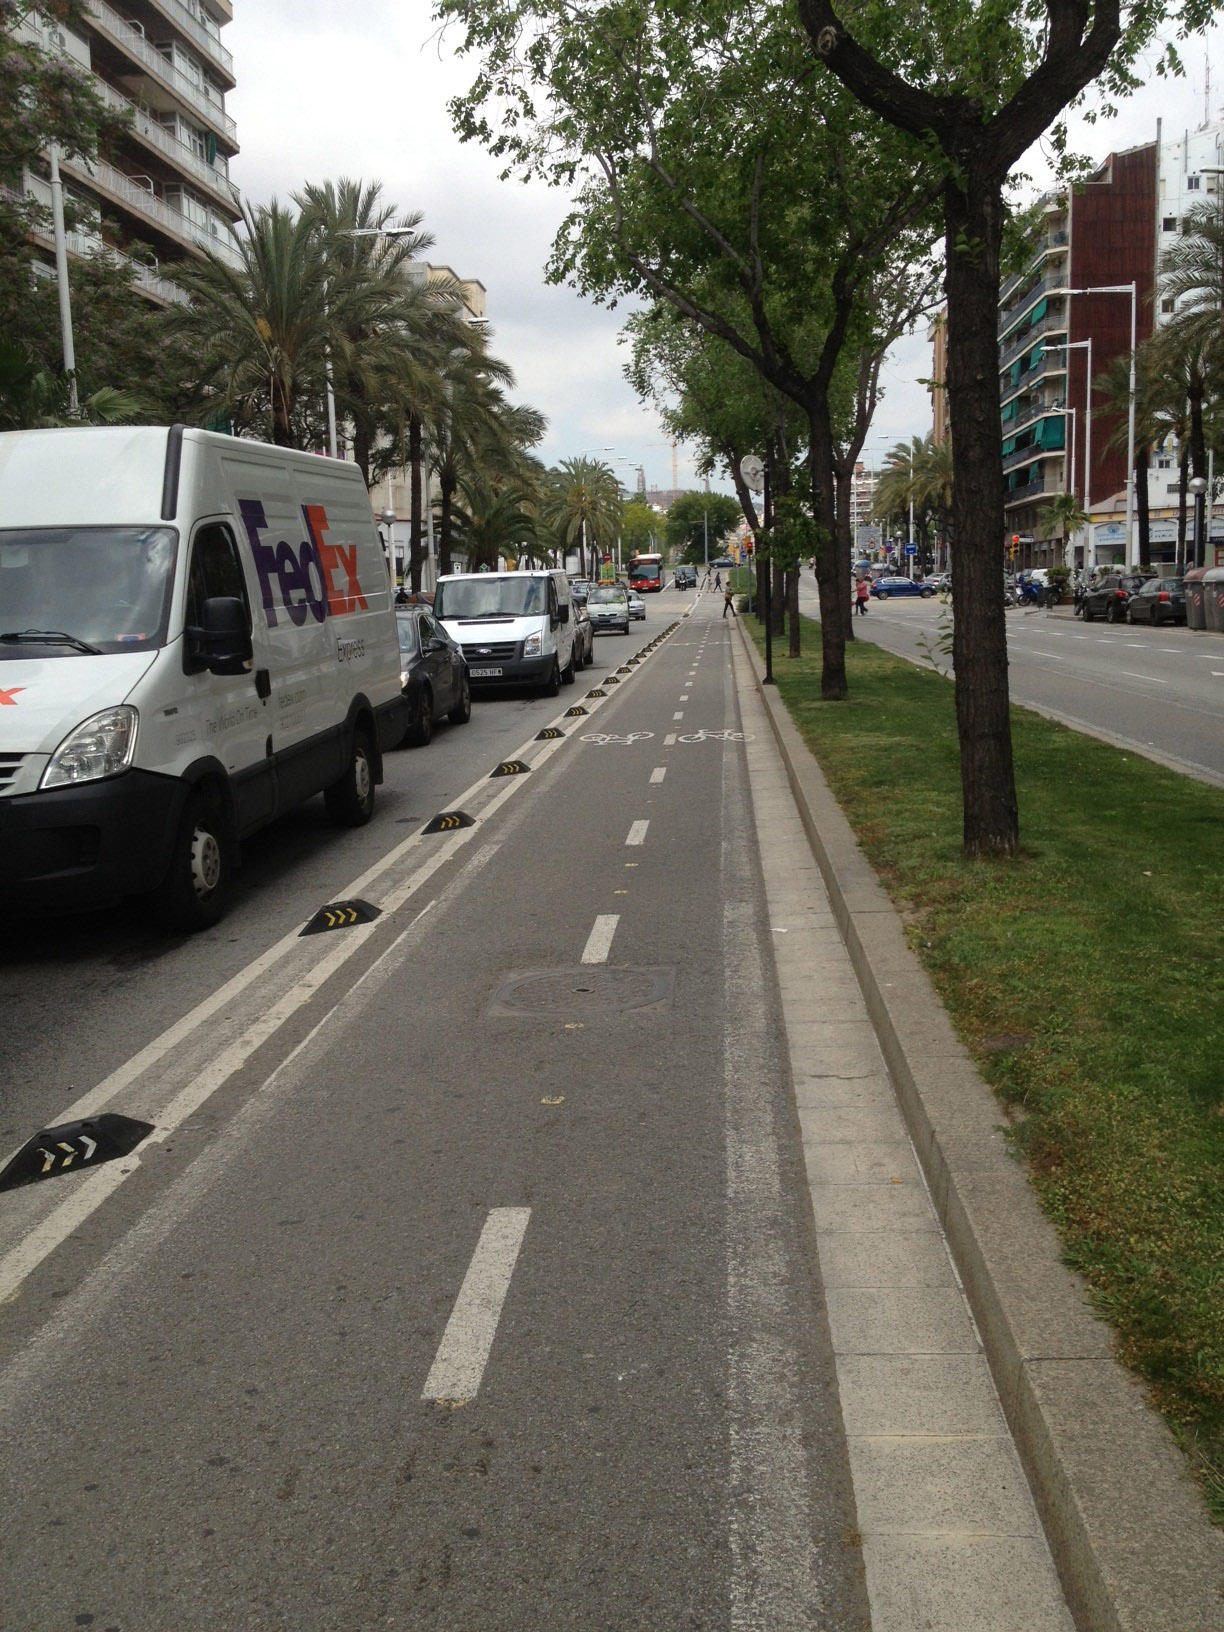 Cycle_path_Barcelona_1.jpg